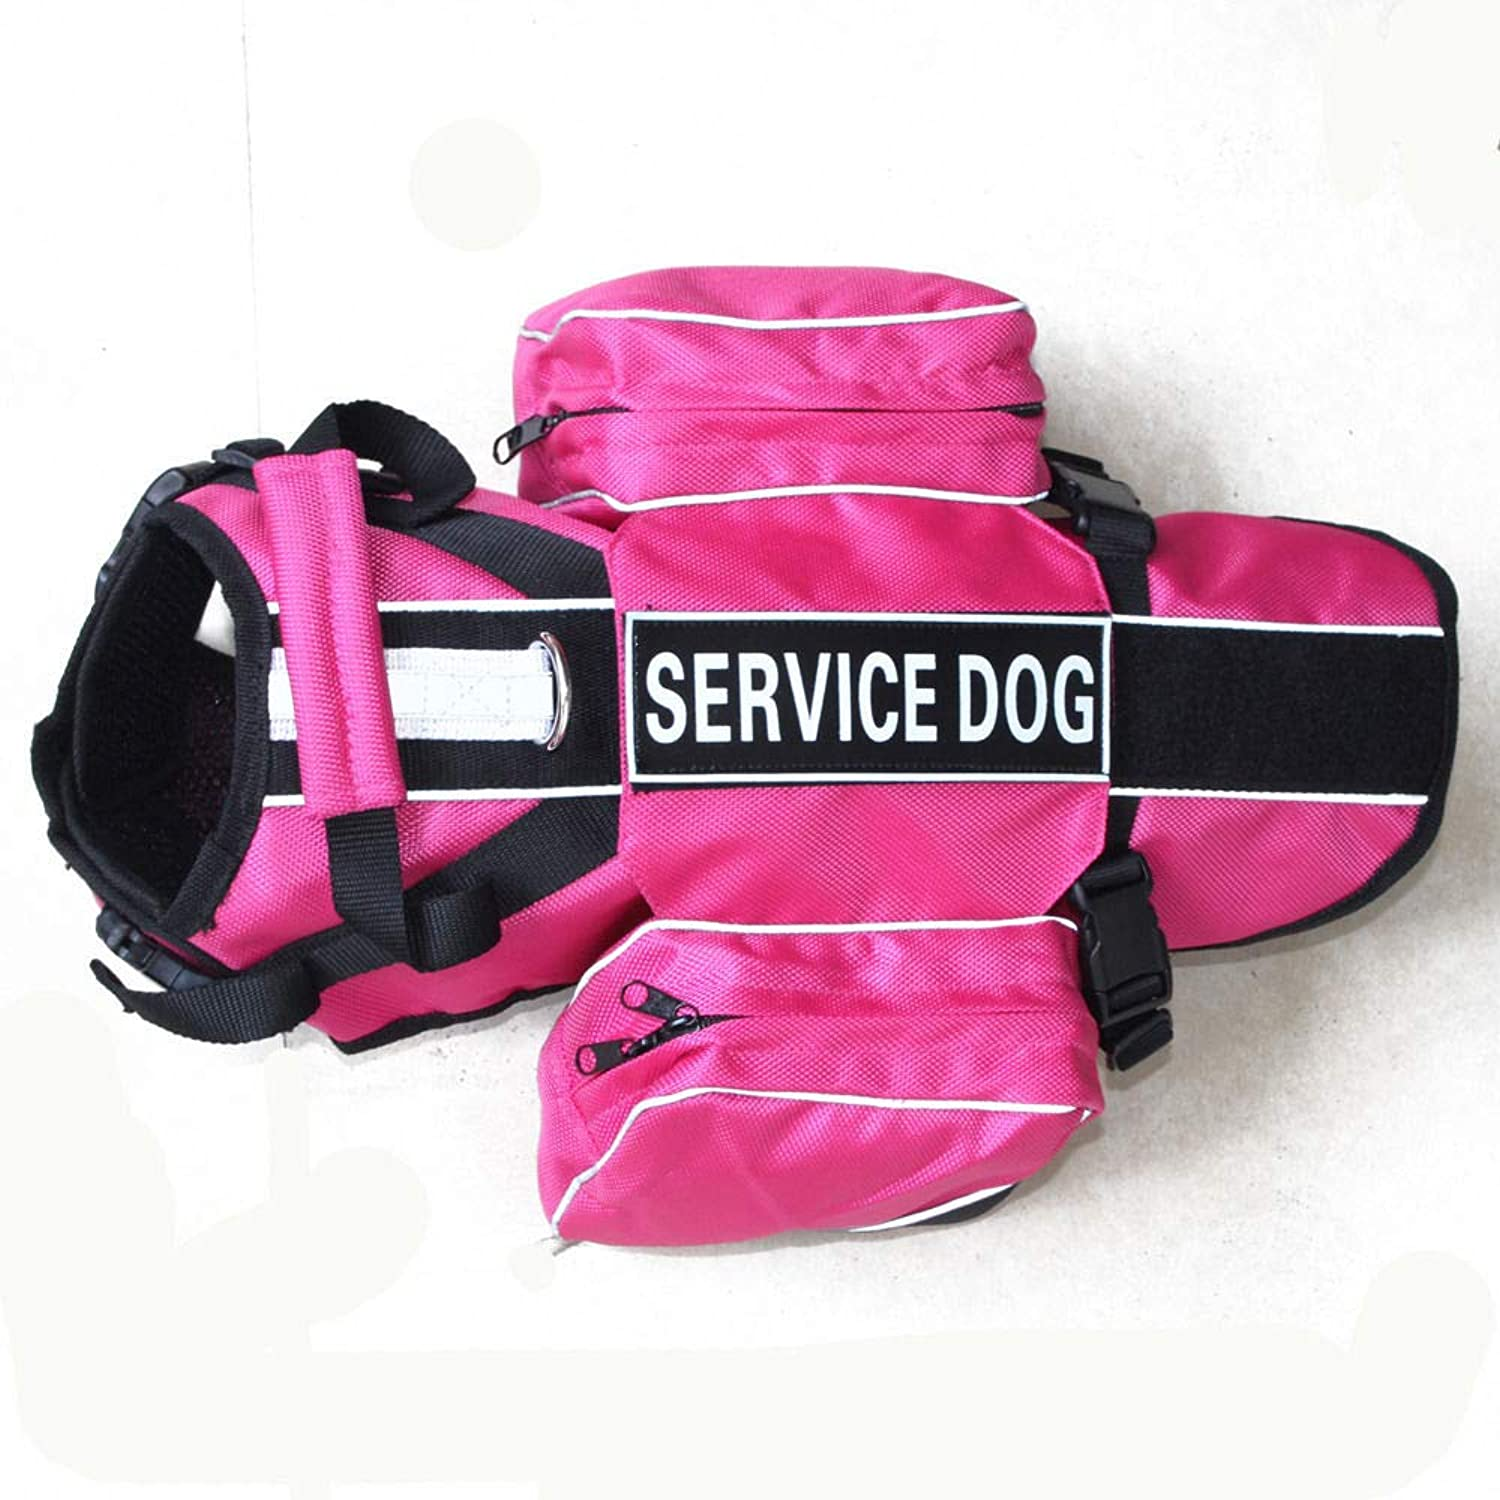 FidgetGear Service Dog Harness Vest 2 Patches with Removable Saddle Bags Pockets 5 colors Hot Pink M Fits Girth 20   24